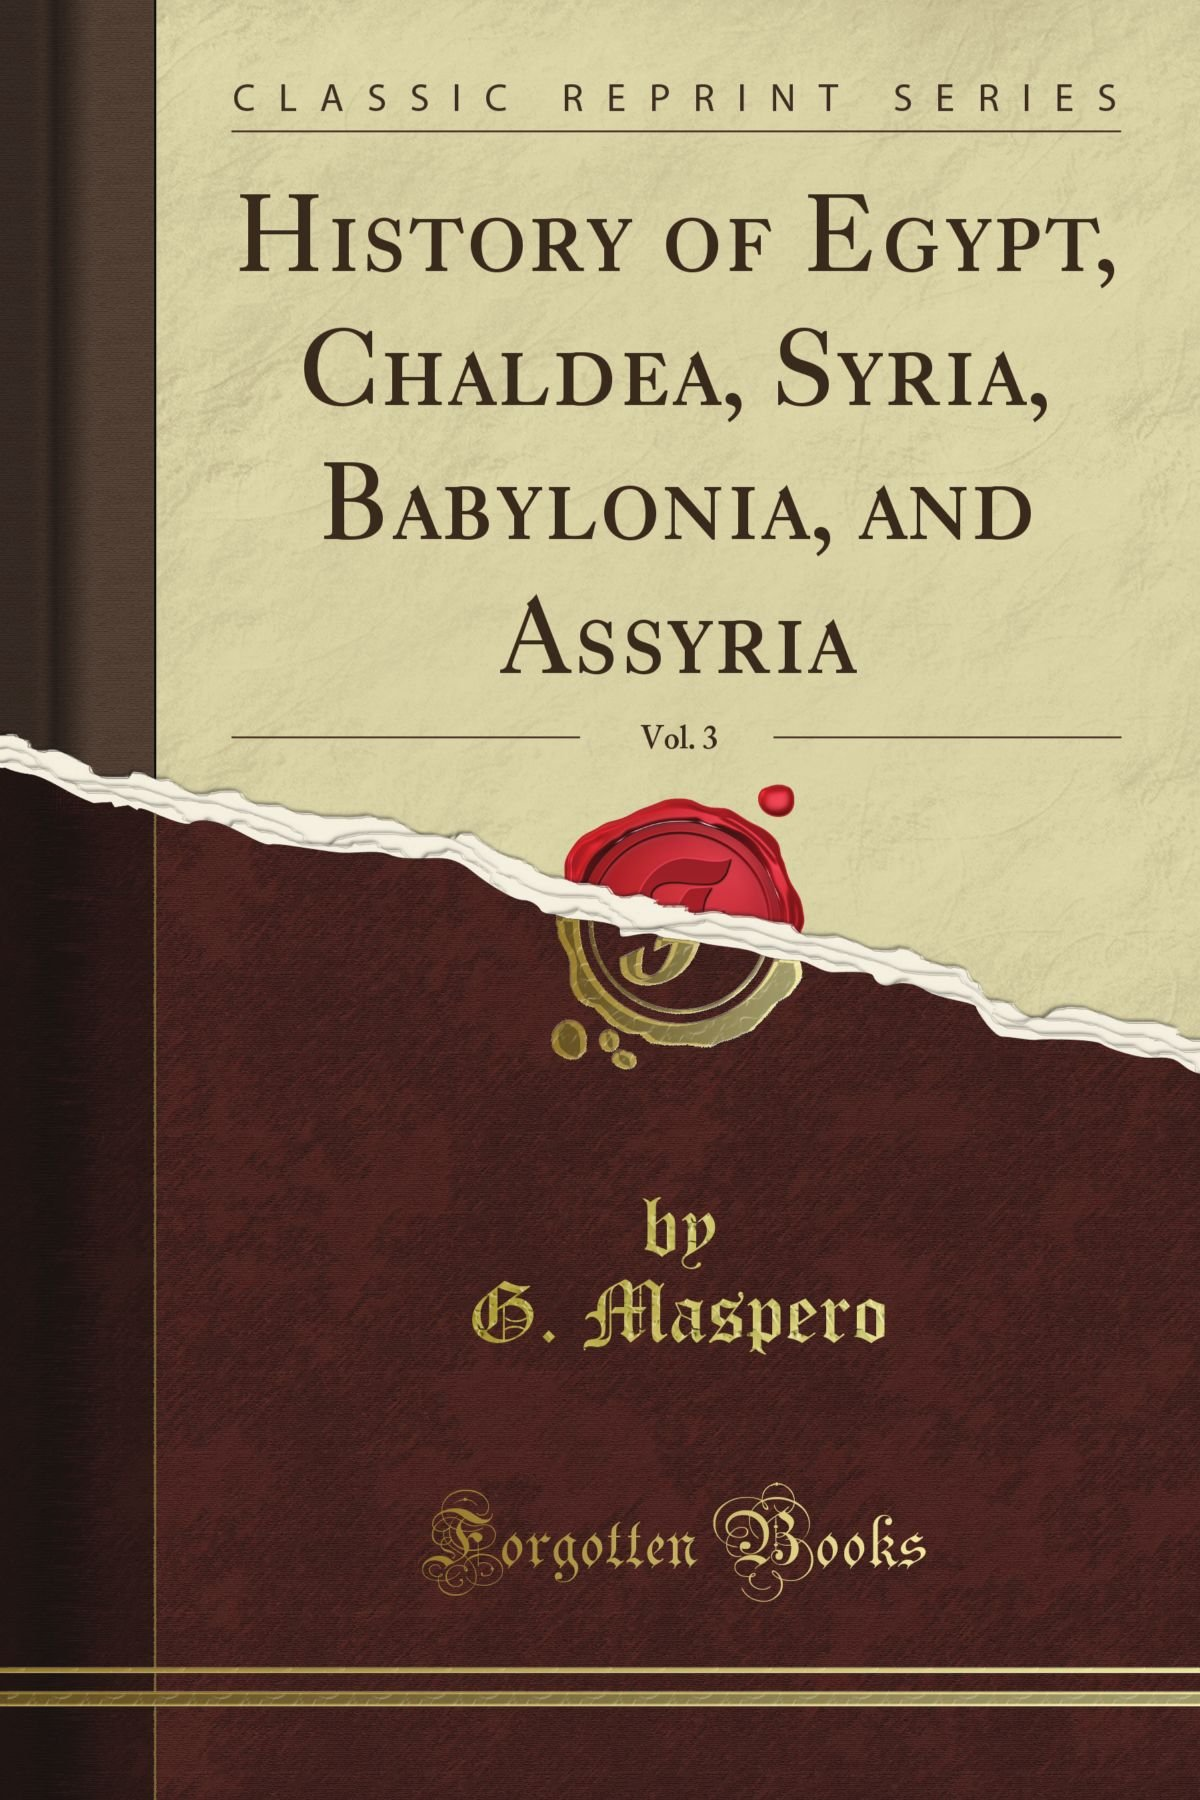 Download History of Egypt, Chaldea, Syria, Babylonia, and Assyria, Vol. 3 (Classic Reprint) ebook